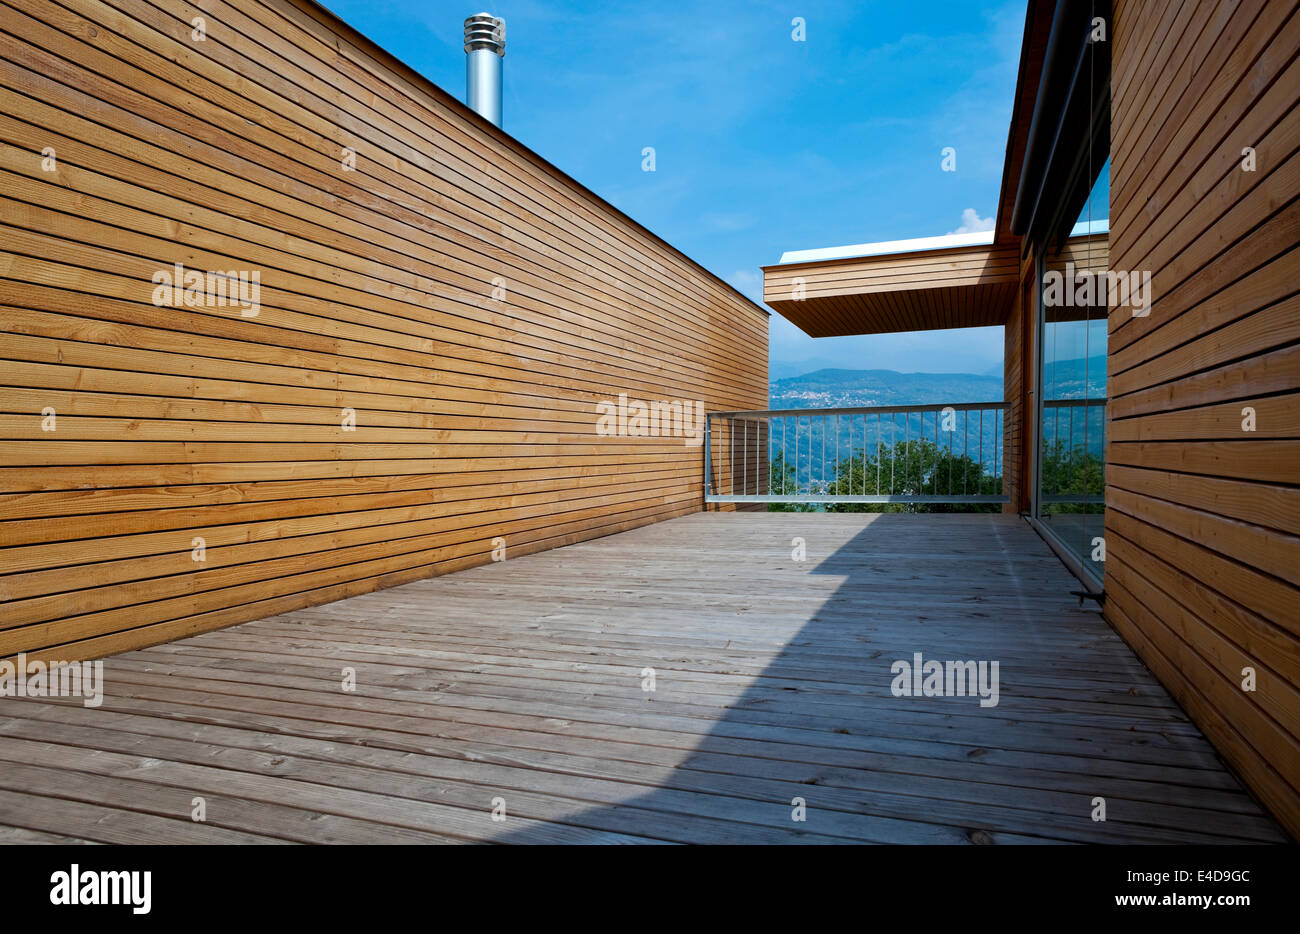 totally wooden terrace of a new modern and sustainable building - Stock Image